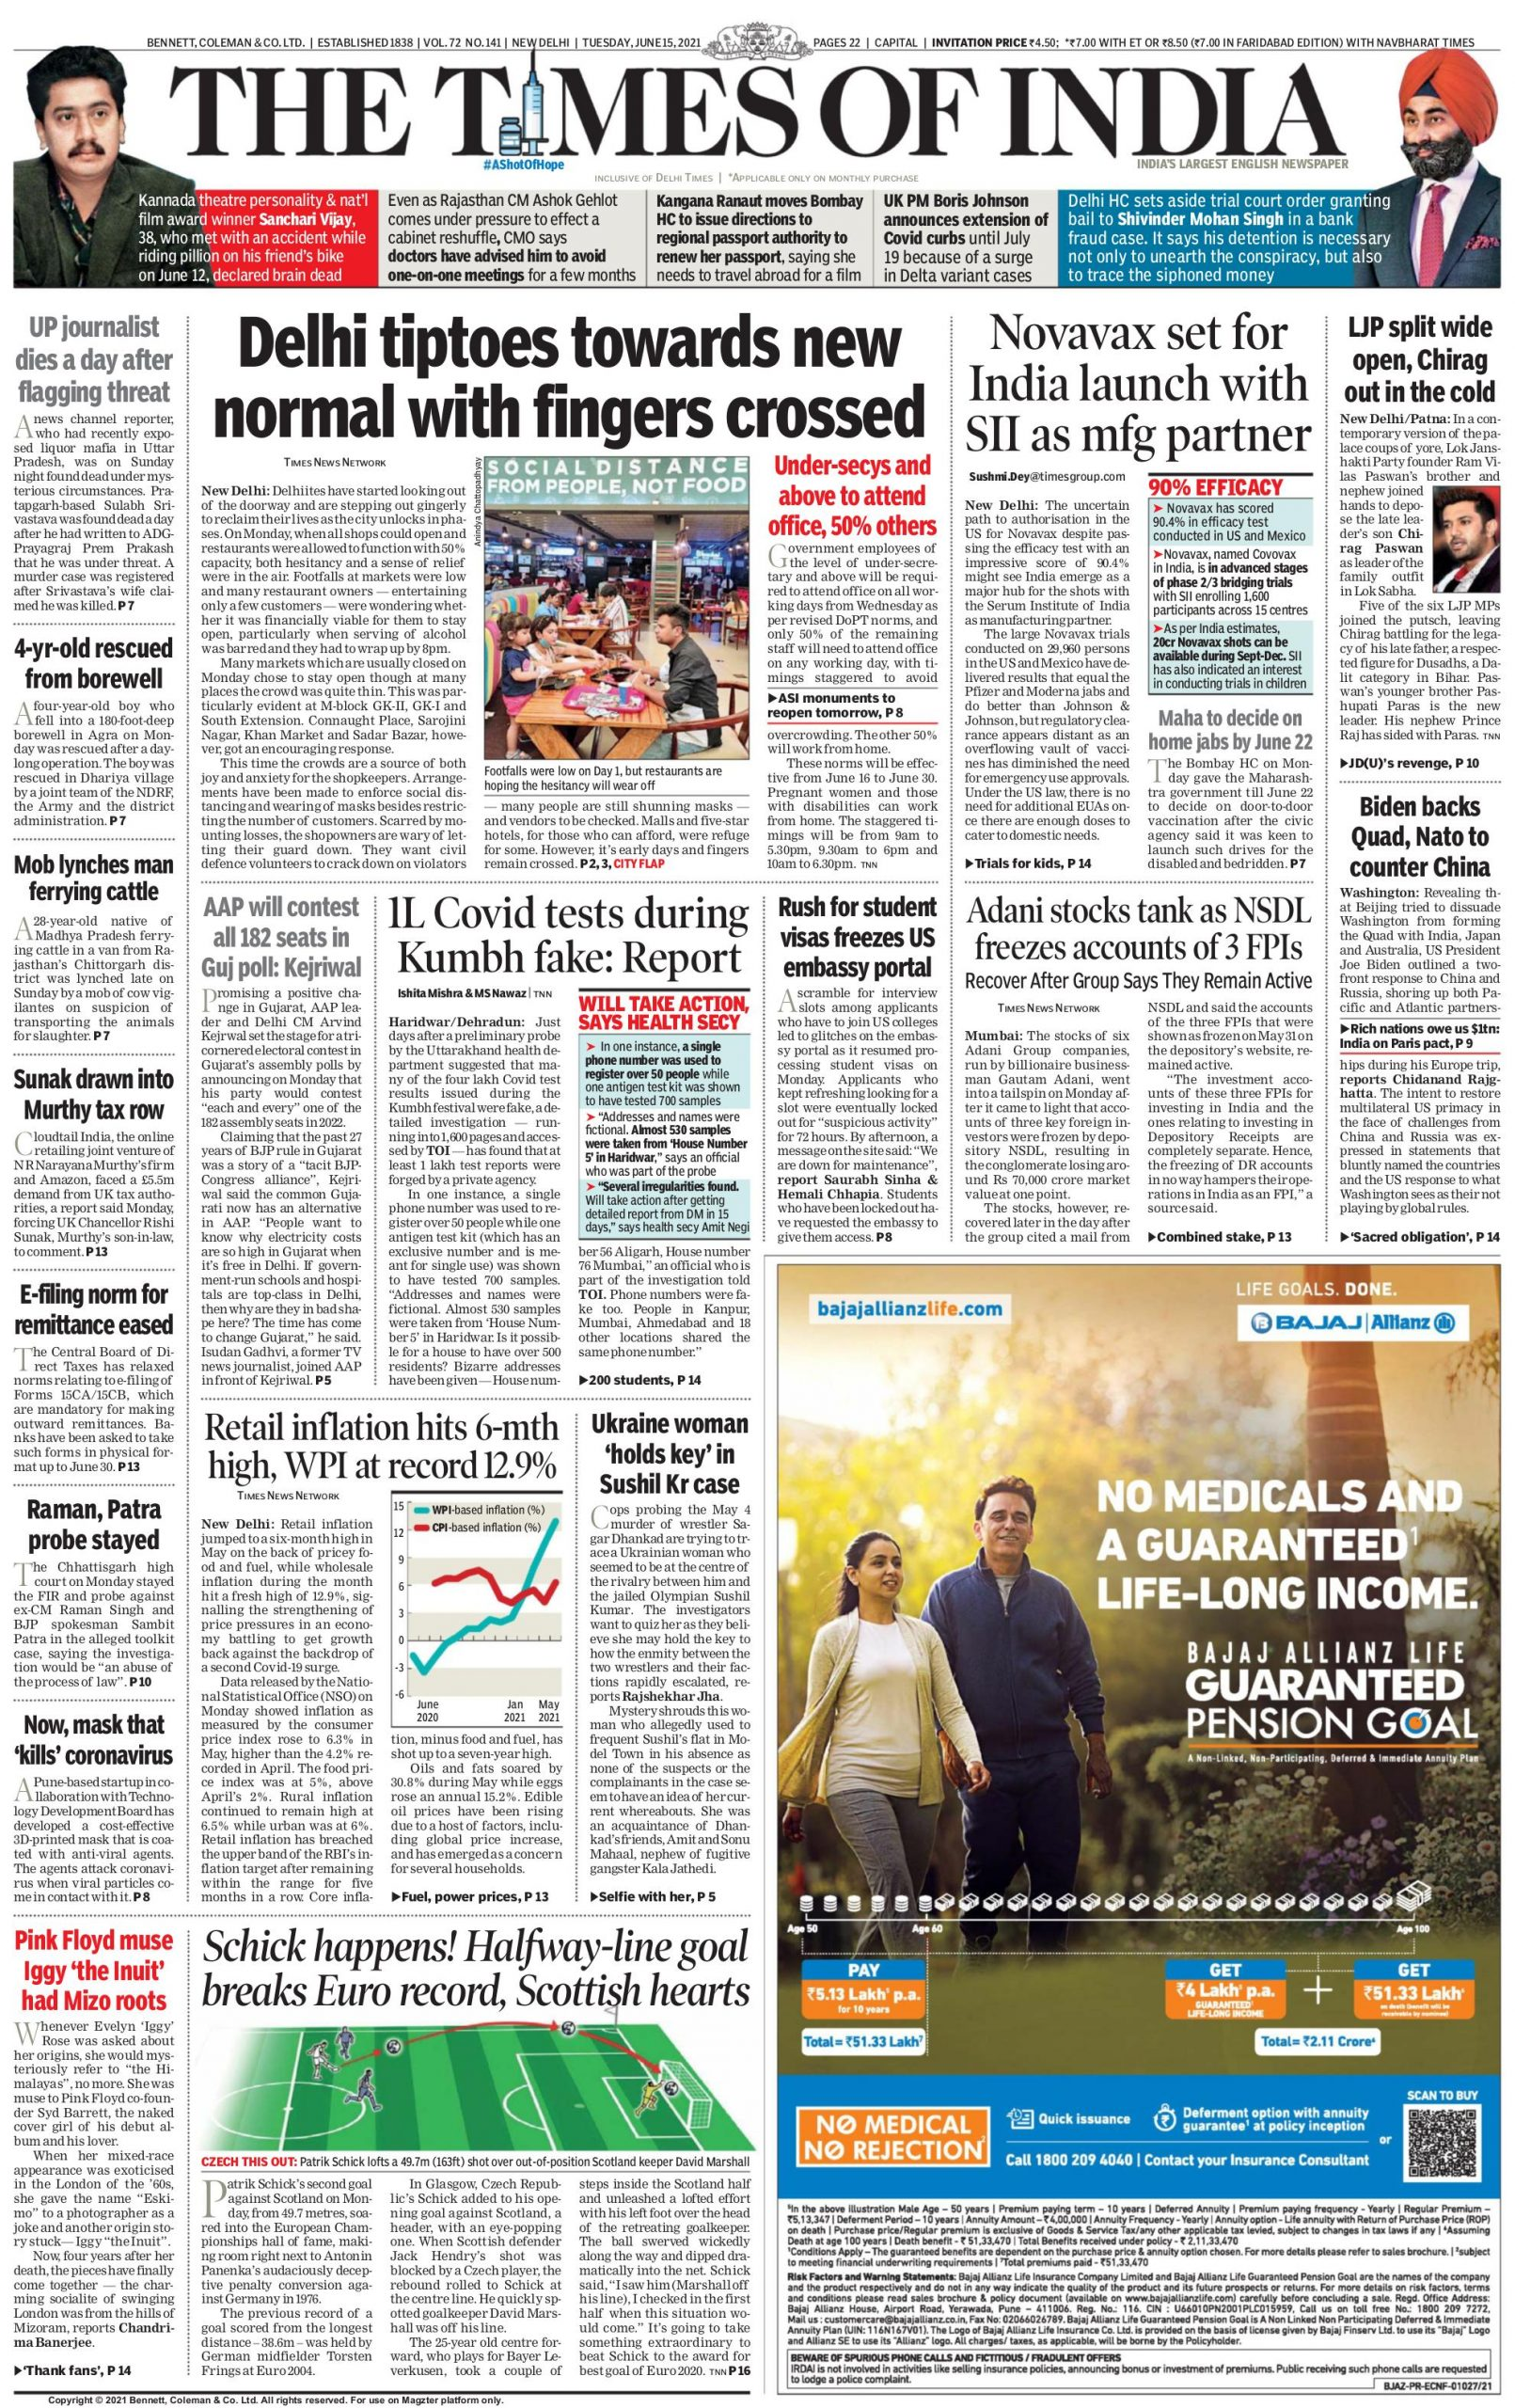 The Times of India 15th June 2021